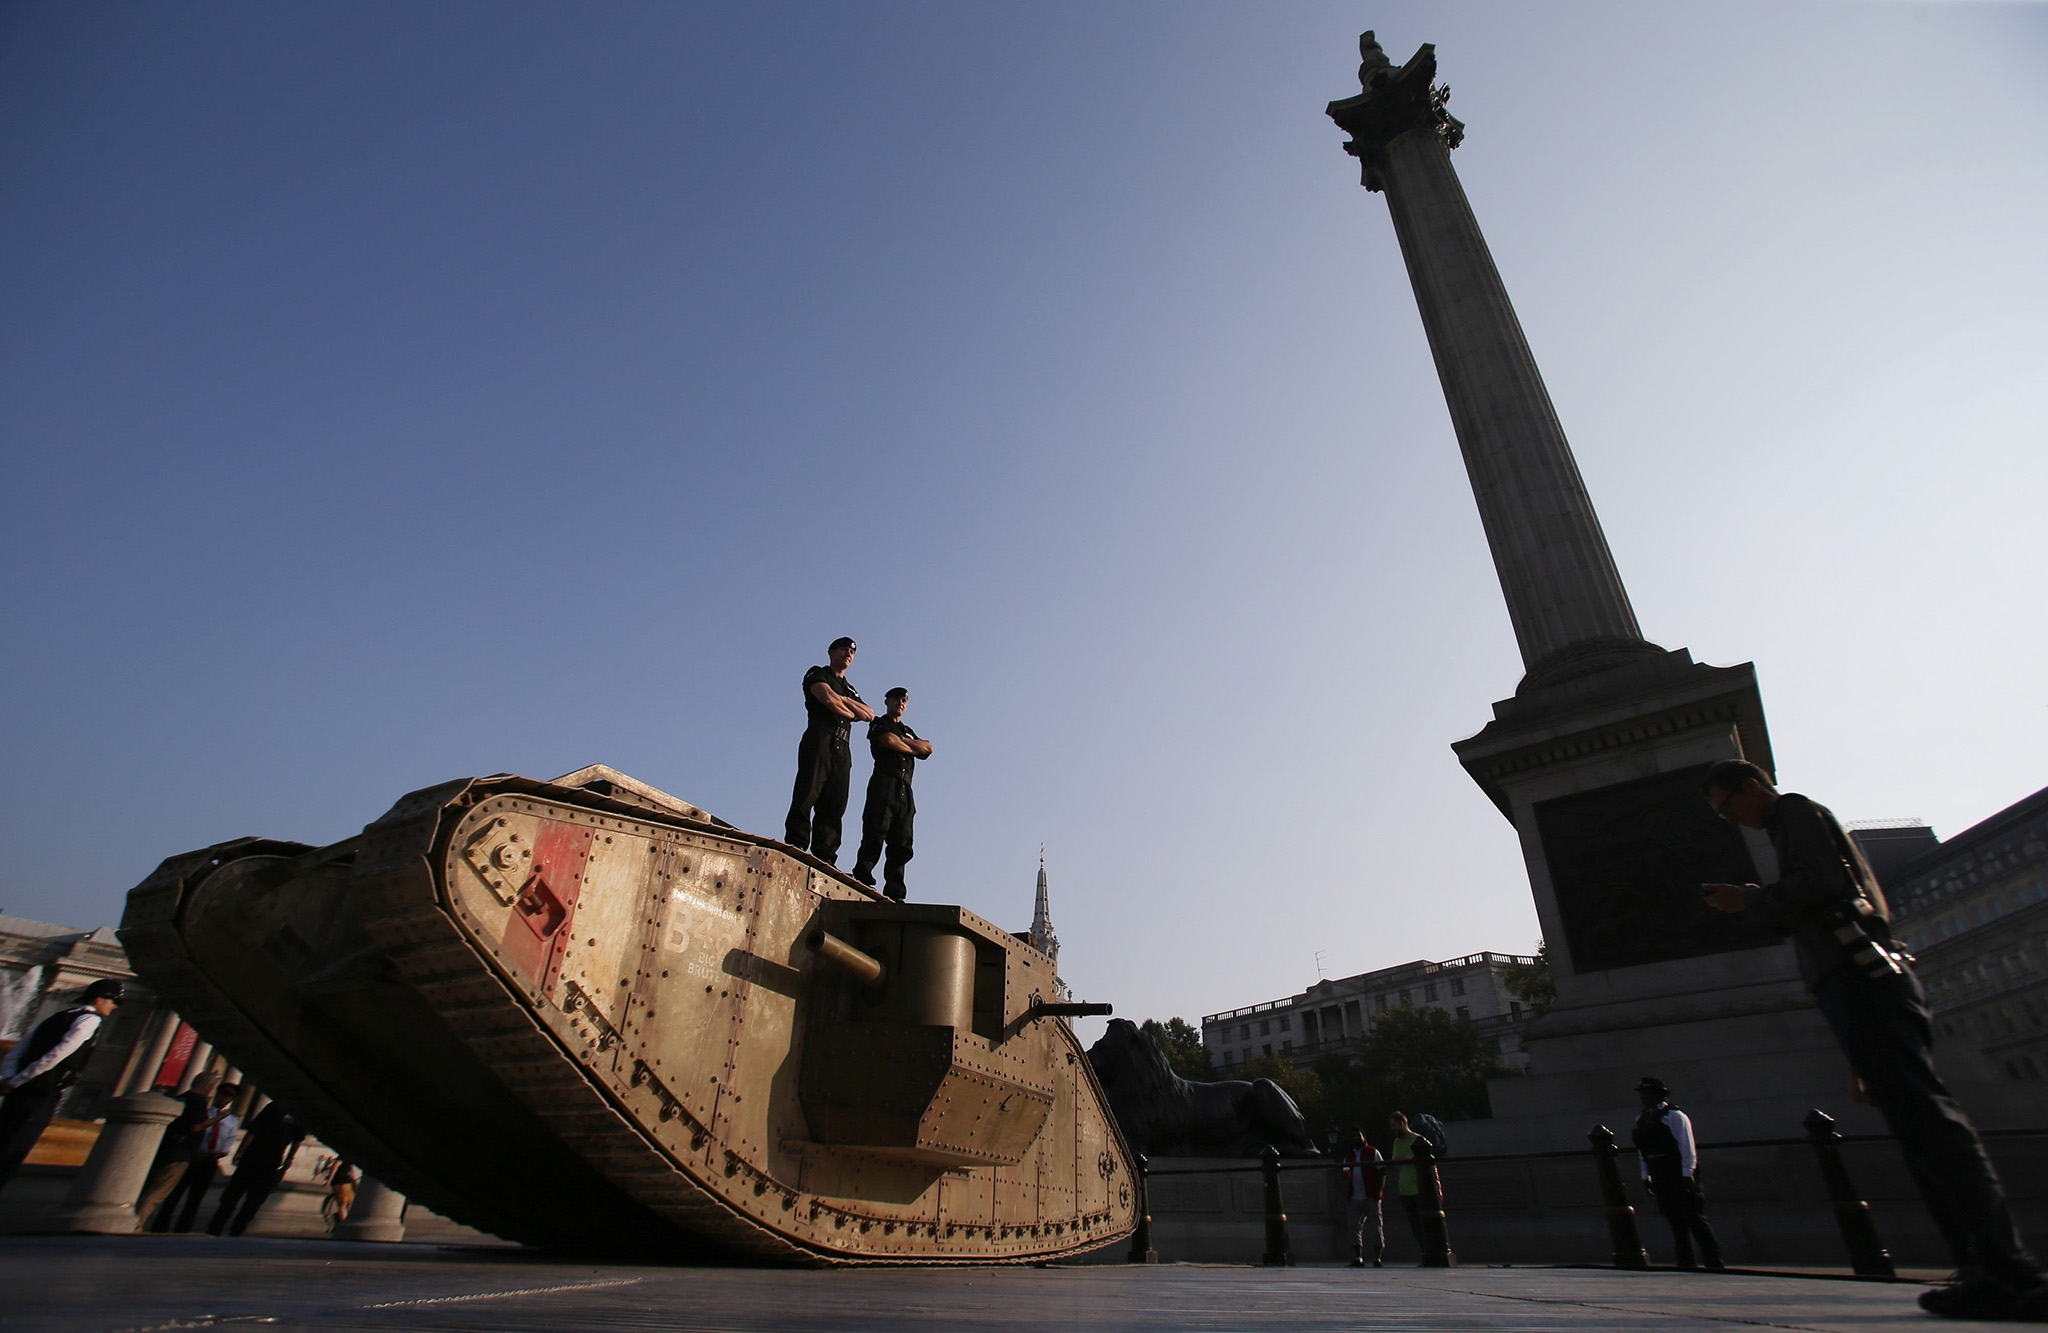 Members of the Royal Tank Regiment stand on a replica First World War Mark IV tank in London's Trafalgar Square marking the centenary of an armoured vehicle's first-ever deployment during the Battle of the Somme. PRESS ASSOCIATION Photo. Picture date: Thursday September 15, 2016. Photo credit should read: Daniel Leal-Olivas/PA Wire